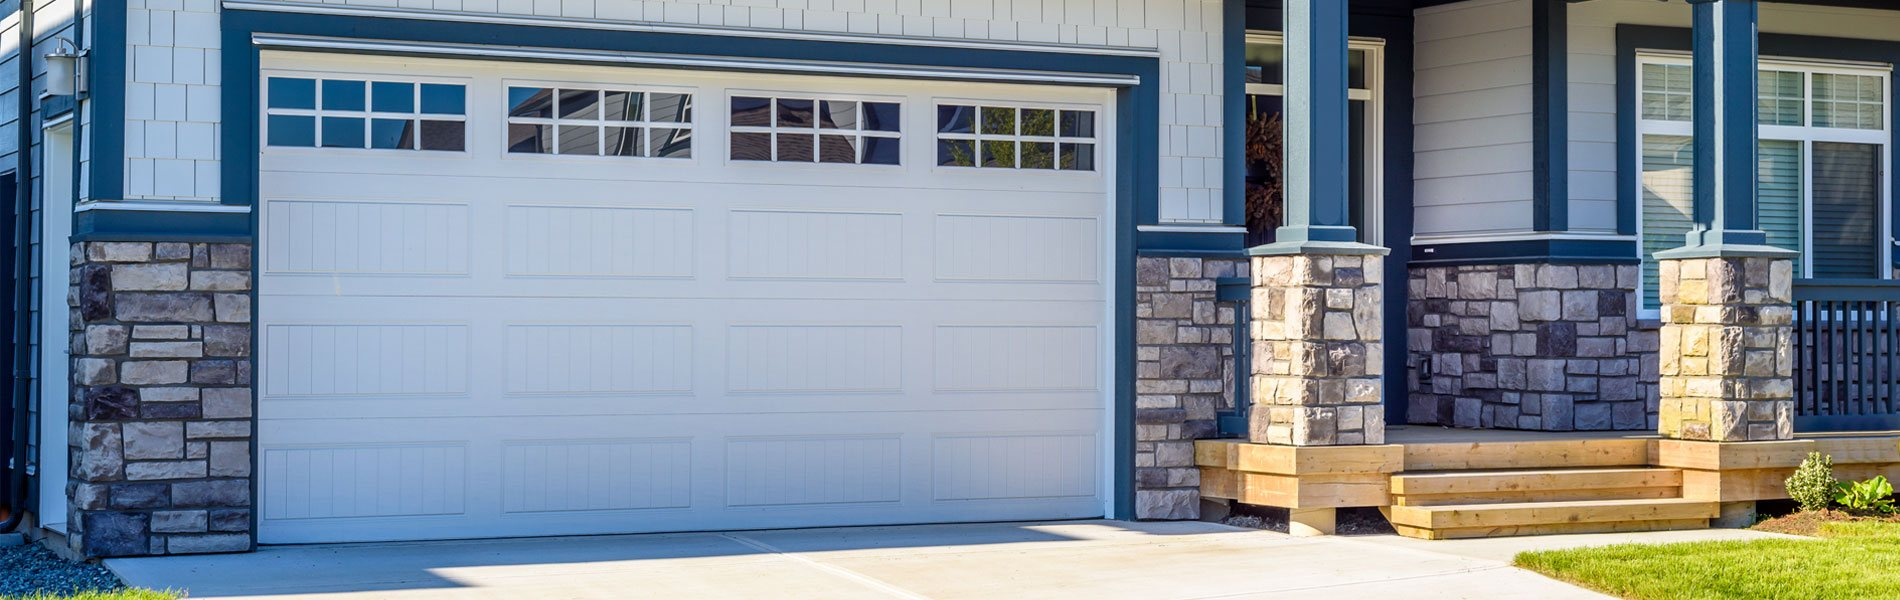 Neighborhood Garage Door Indianapolis, IN 317-661-4701